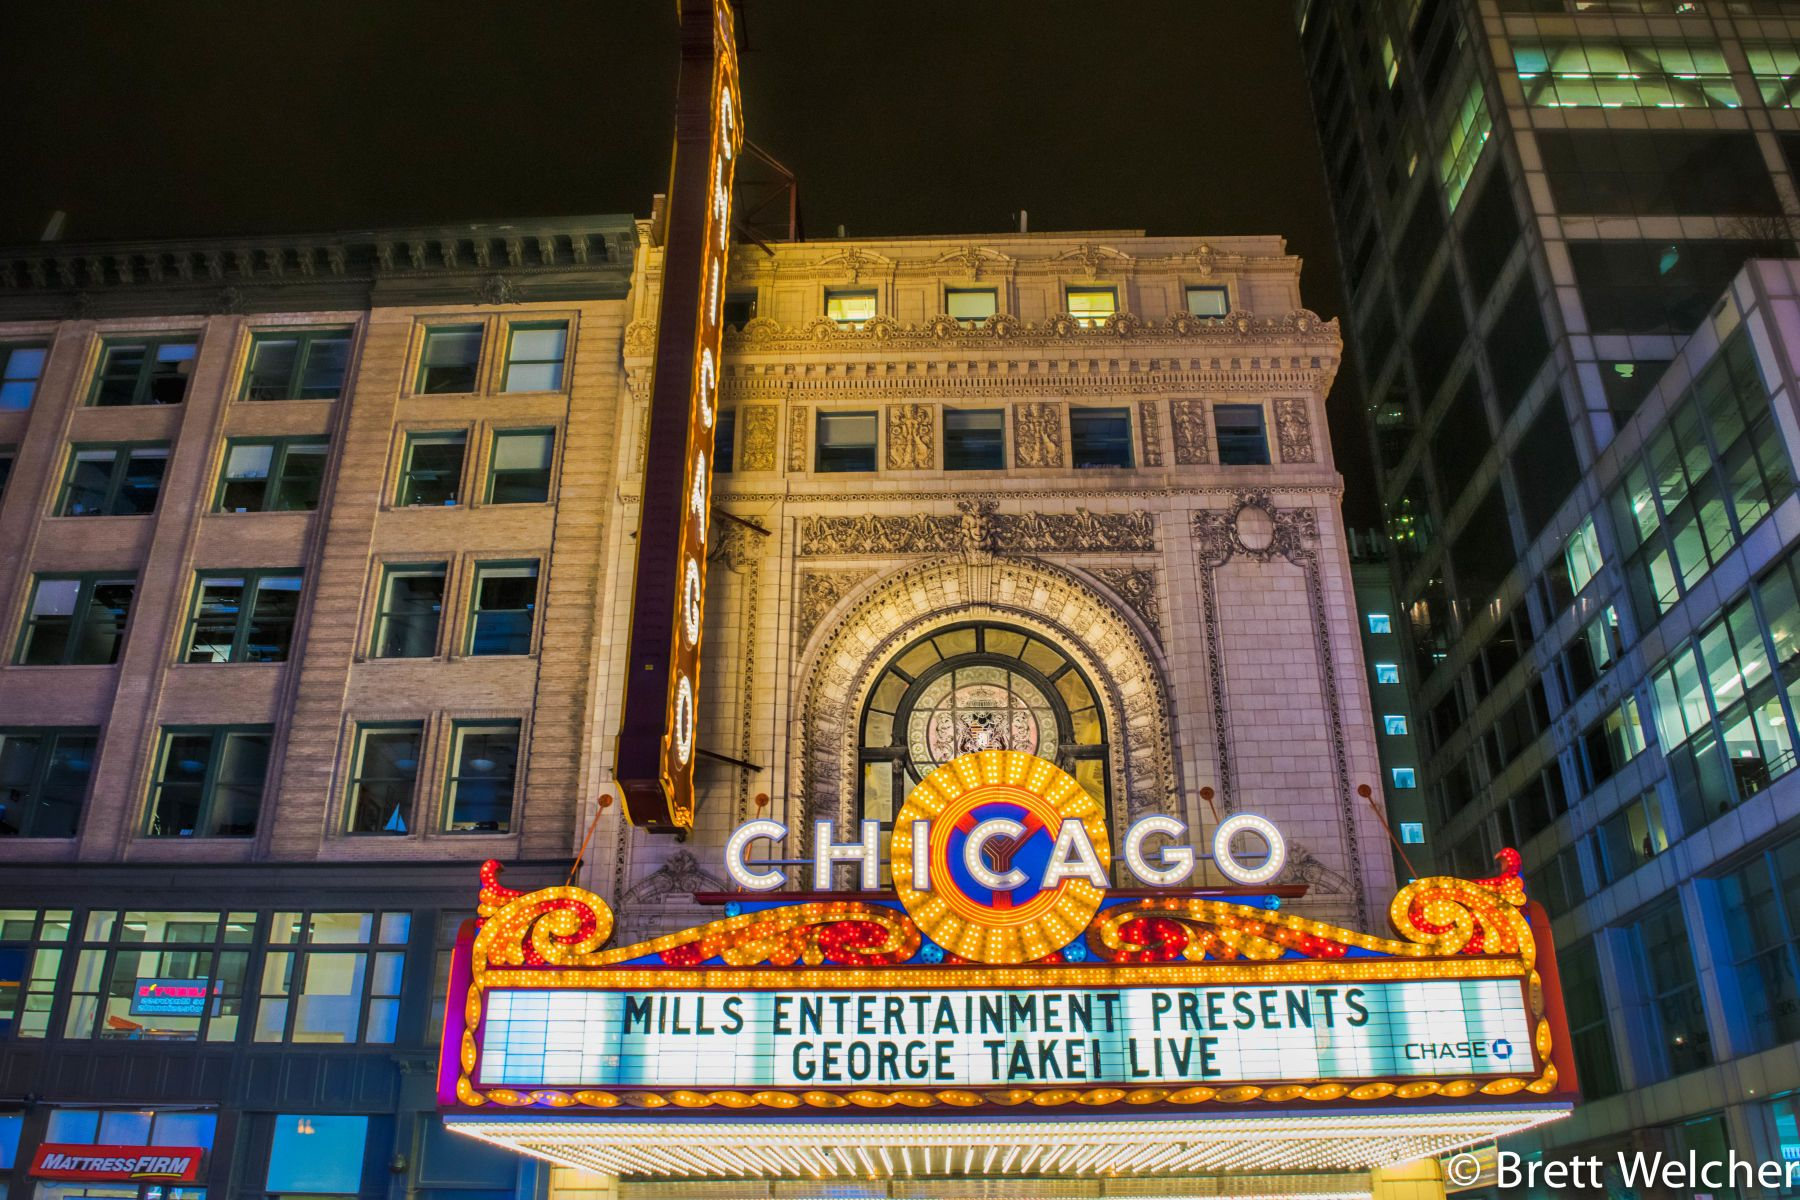 The Chicago Theatre is a legendary auditorium that hosts a variety of entertainment, including stage events, concerts, dance, comedy and special events.